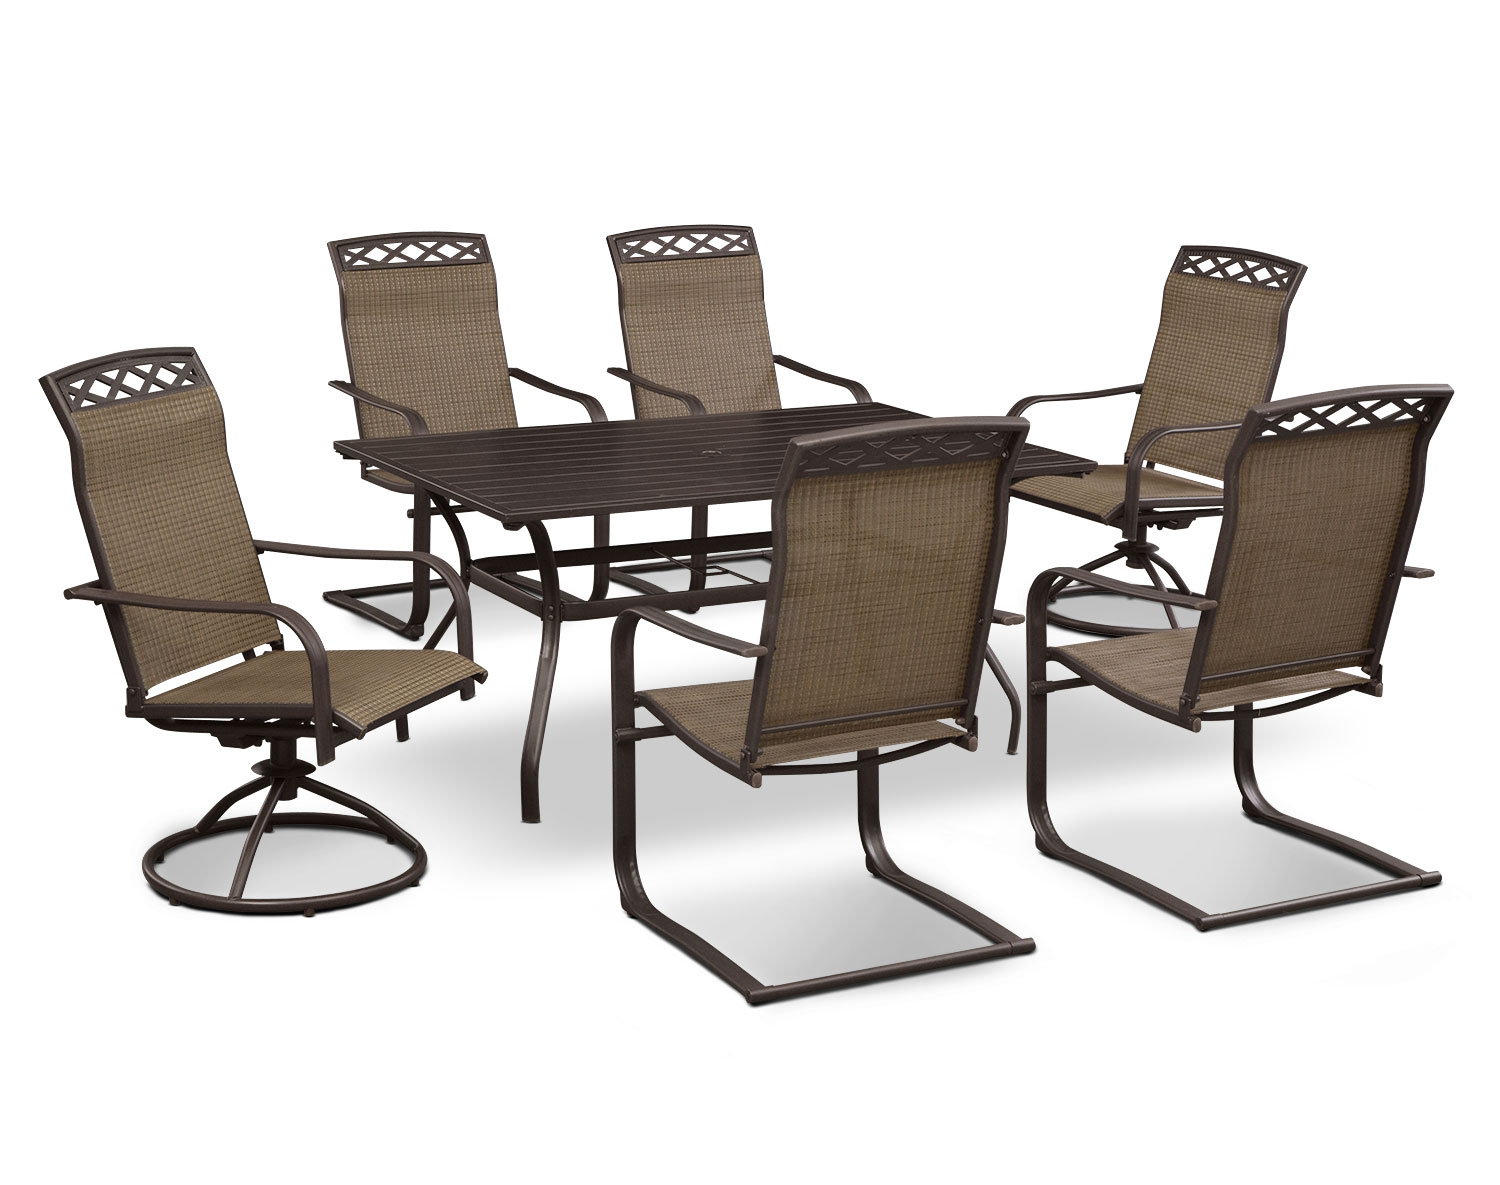 The Terrace Outdoor Dining Room Collection